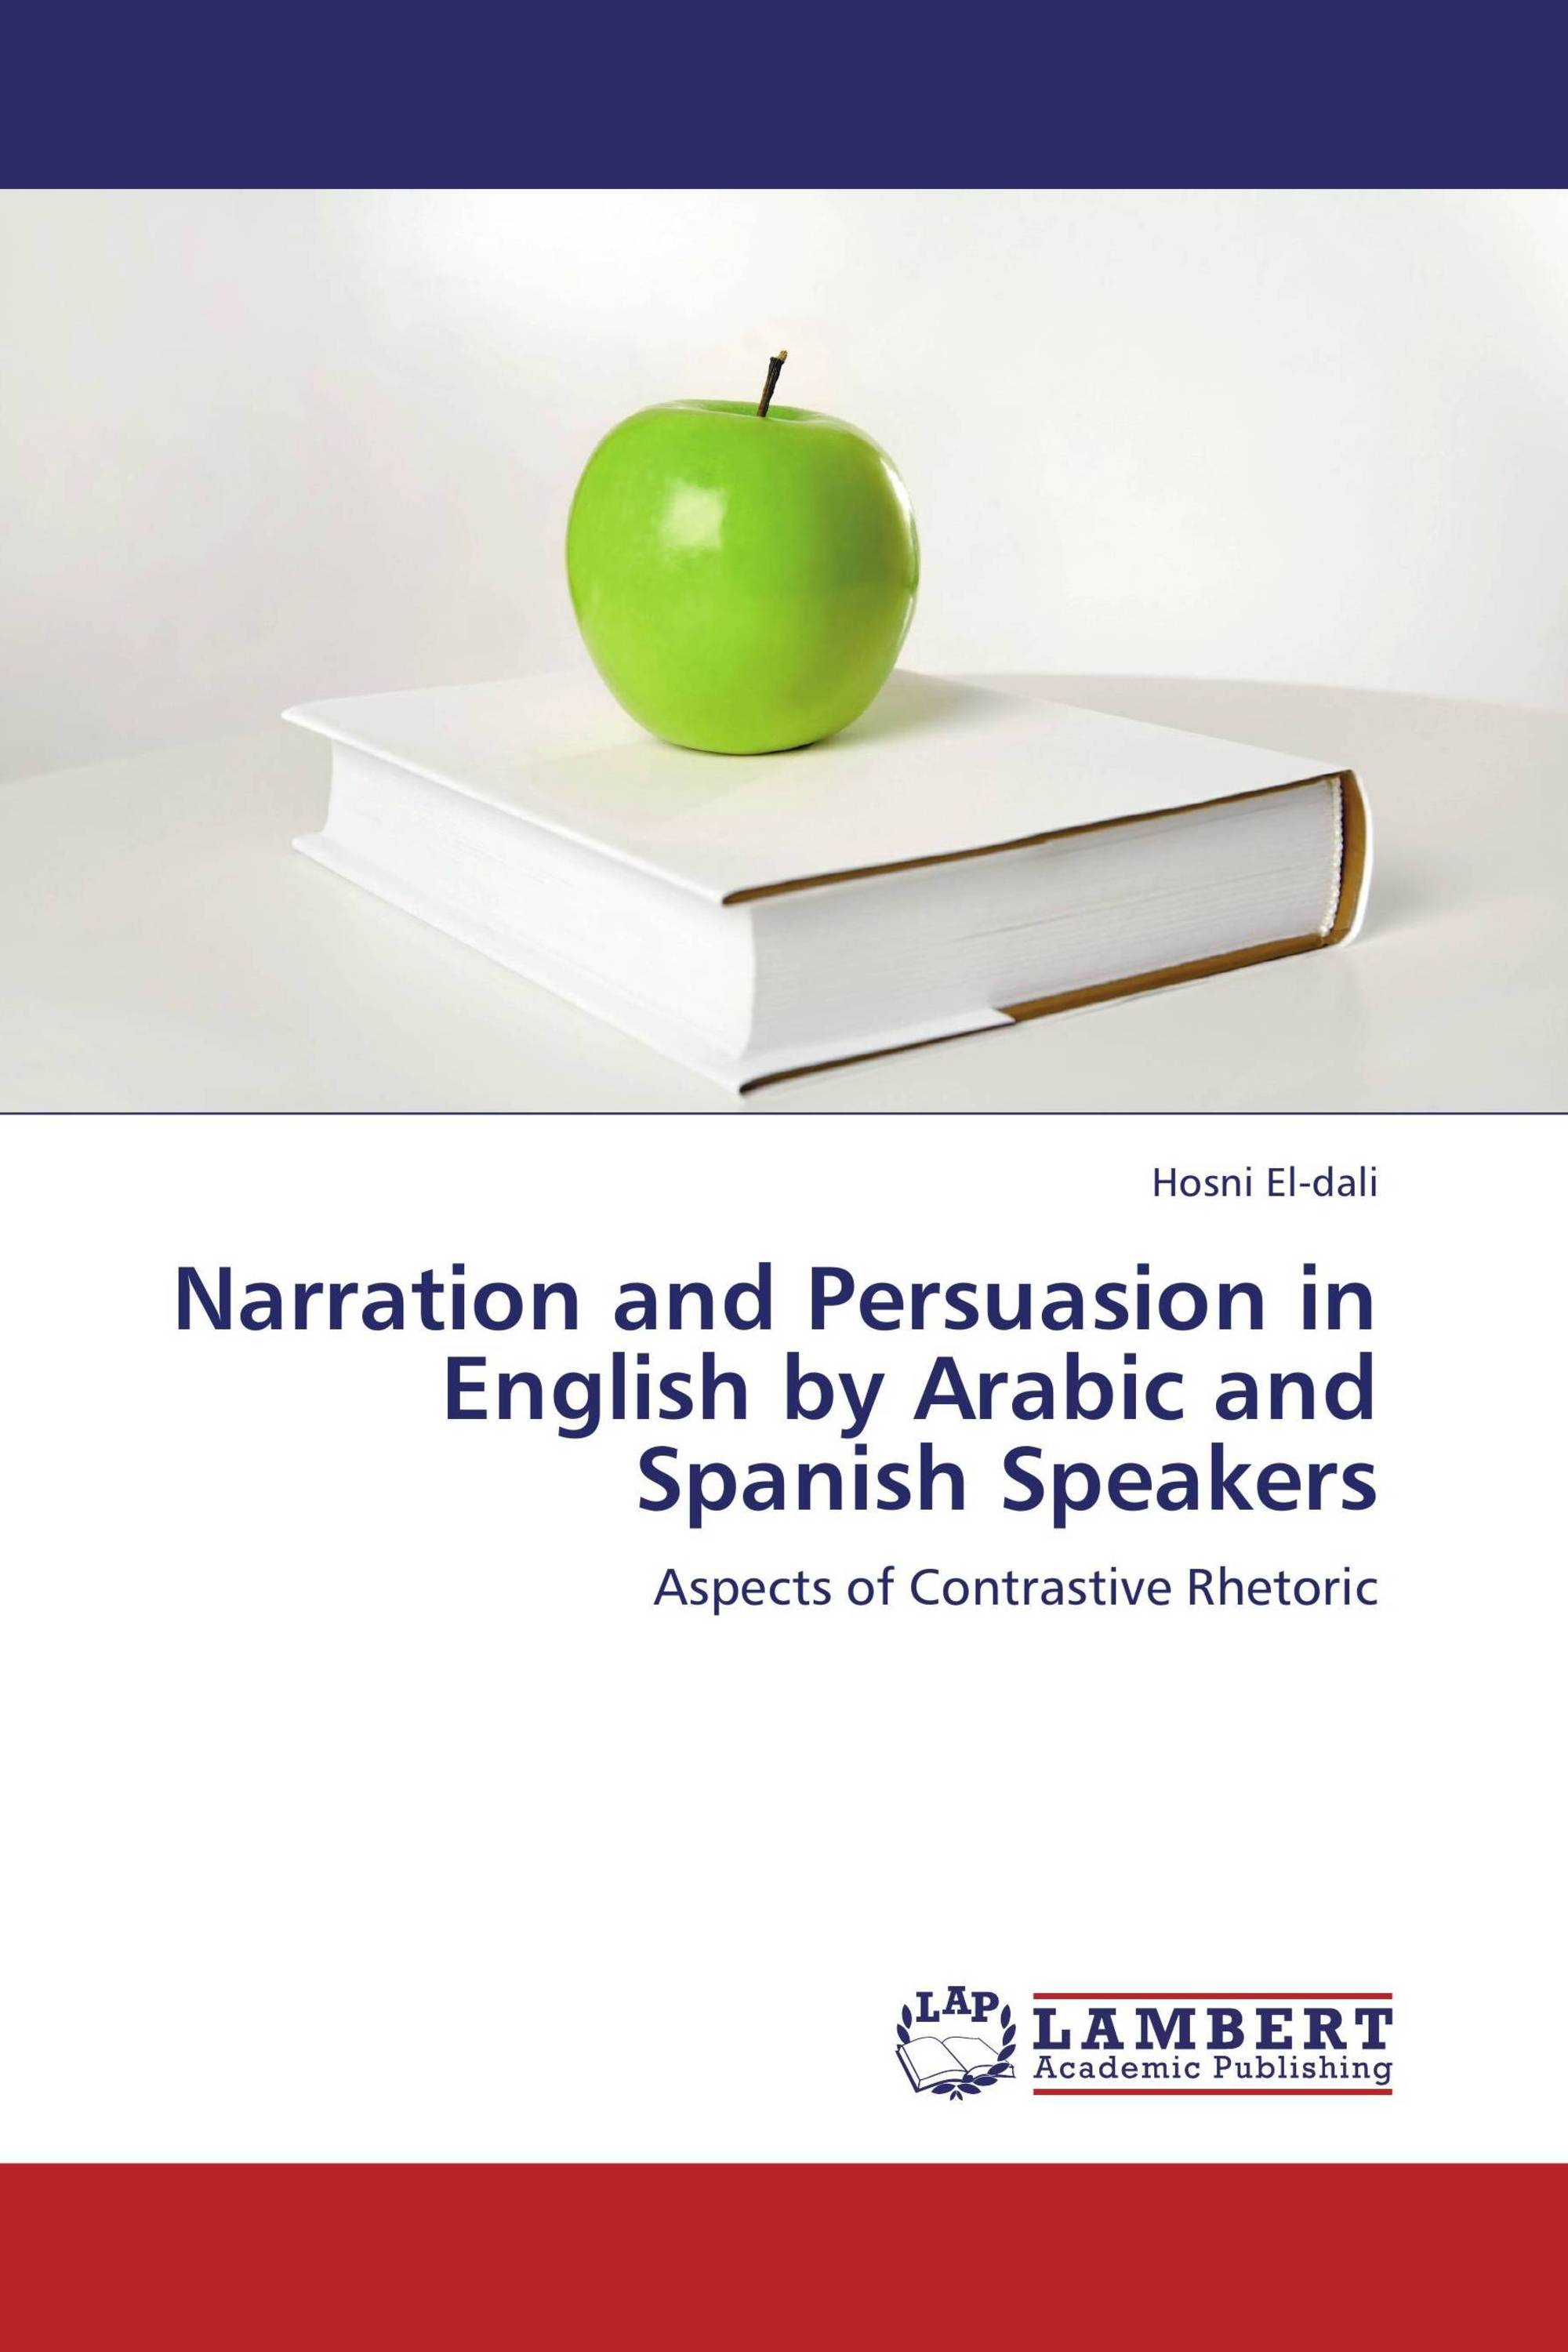 Narration and Persuasion in English by Arabic and Spanish